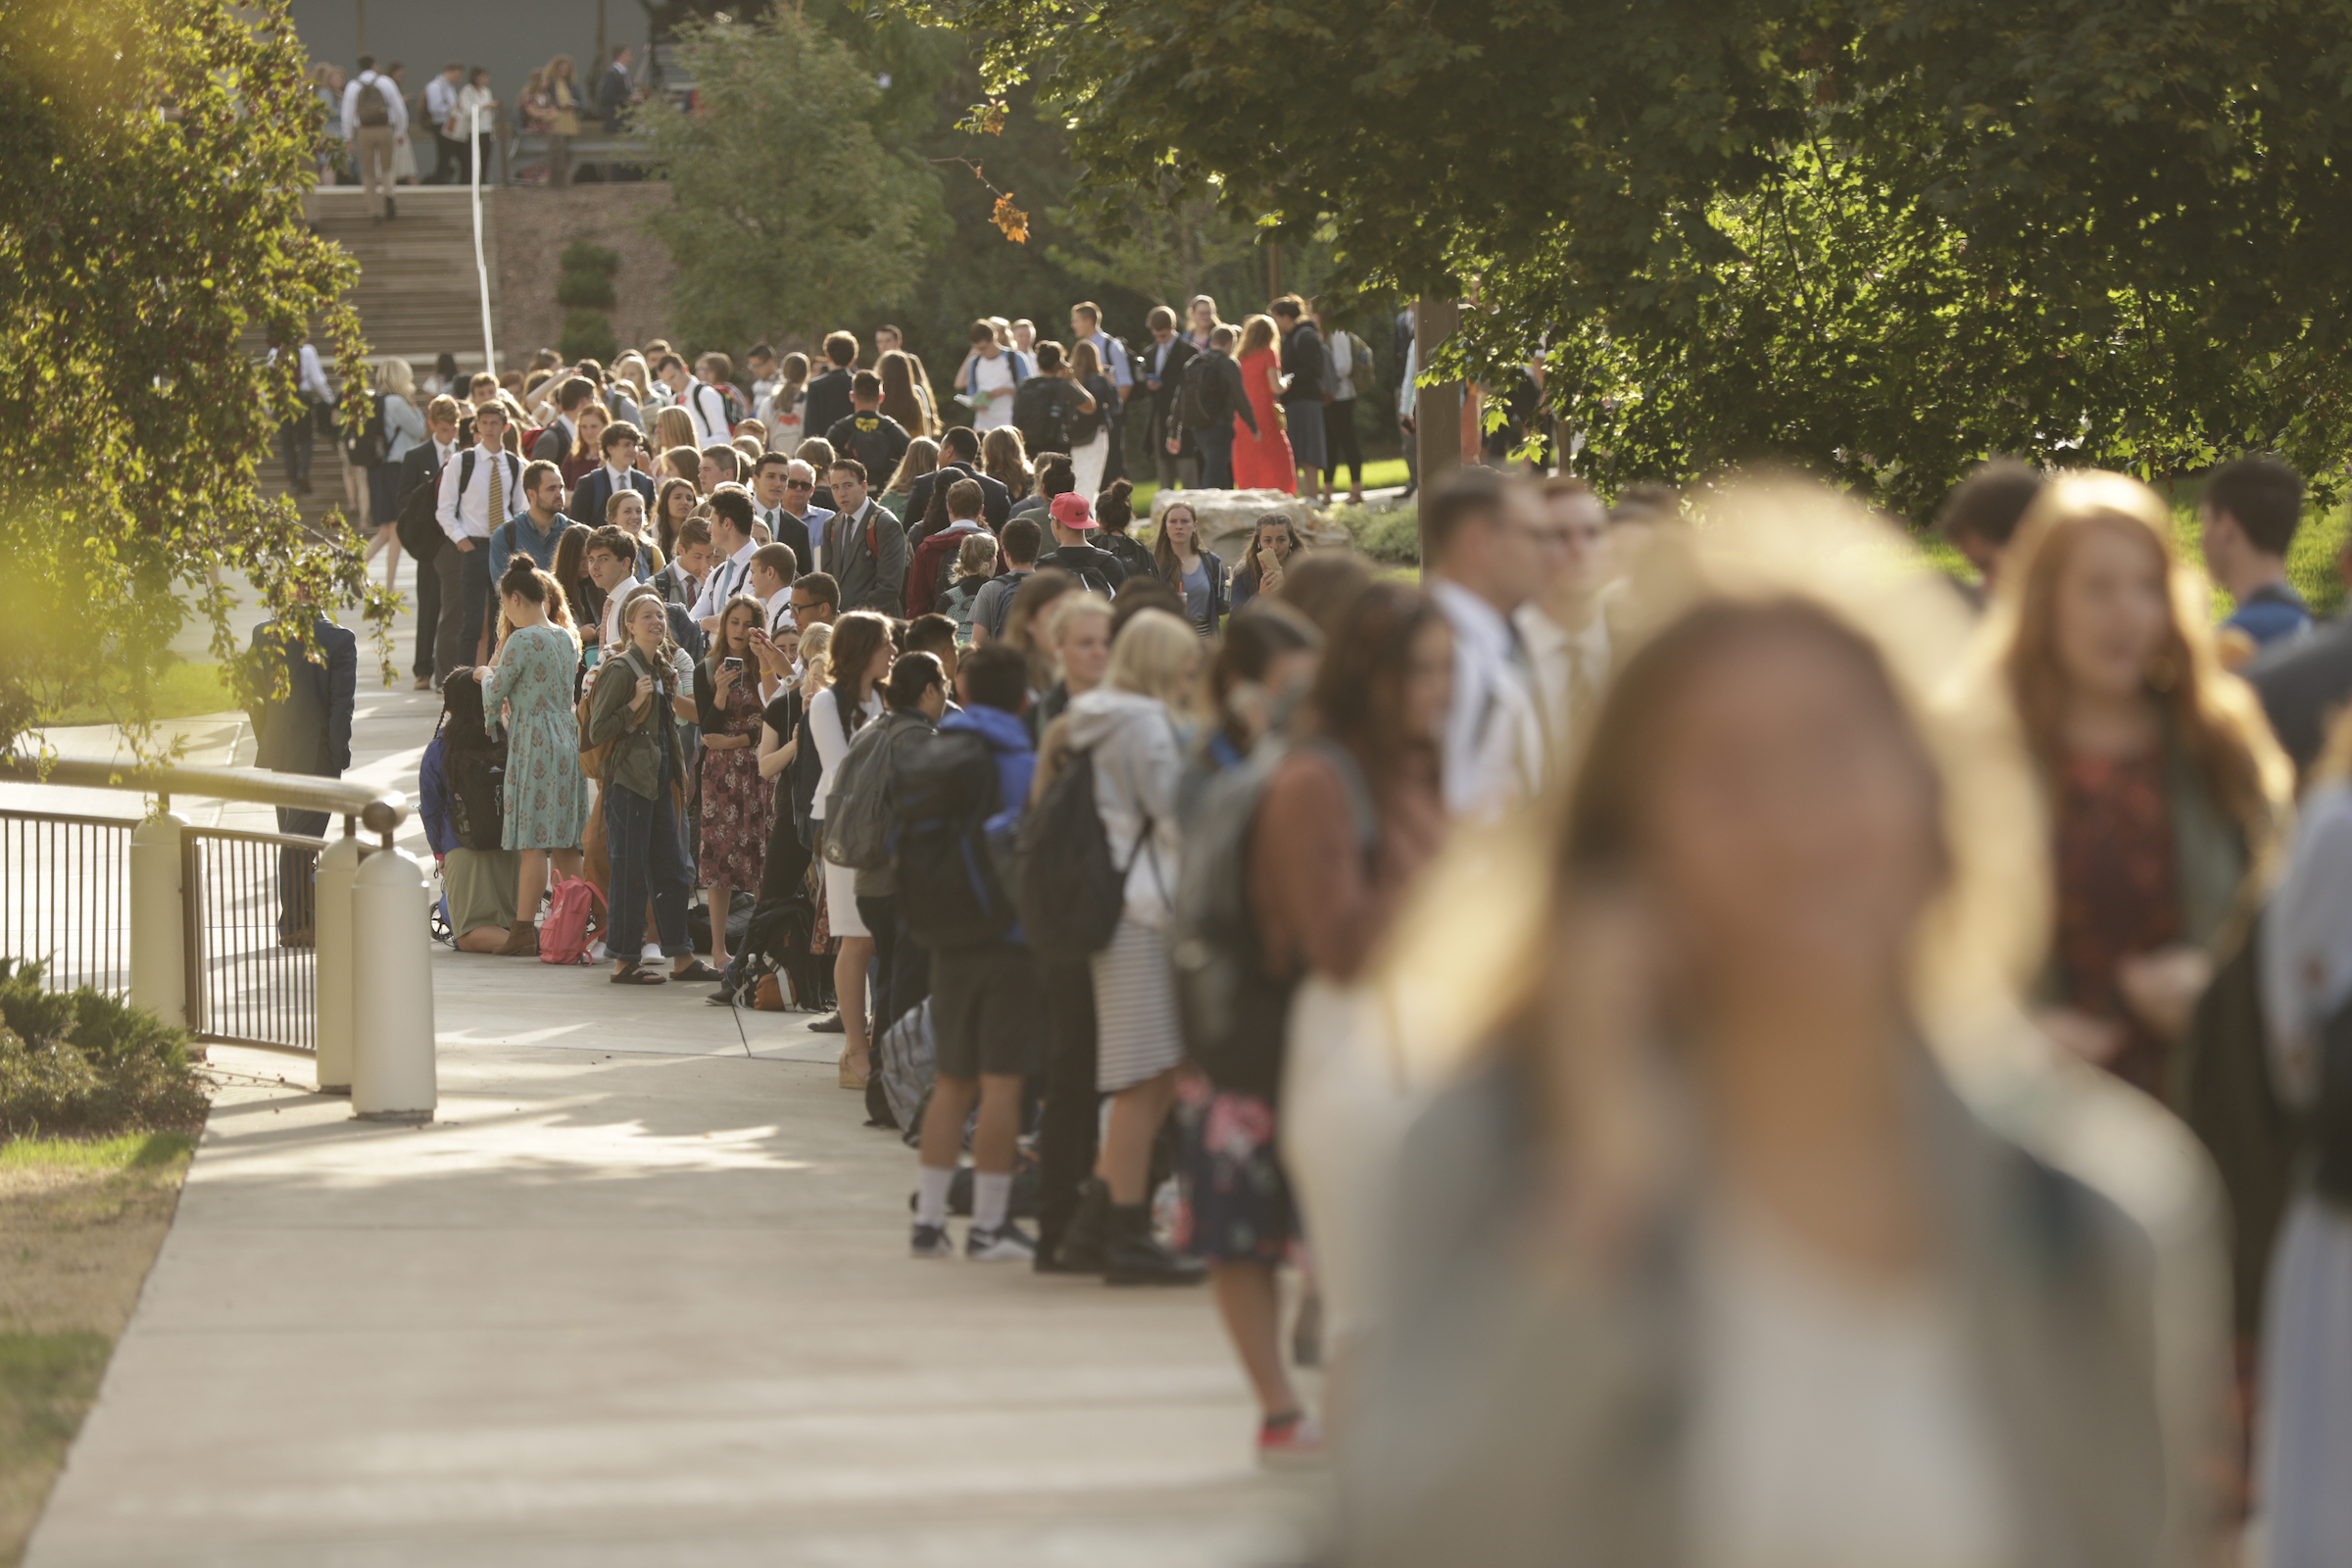 Students line up to enter the Marriott Center on BYU campus in preparation for a devotional by President Russell M. Nelson on Tuesday, Sept. 17, 2019.